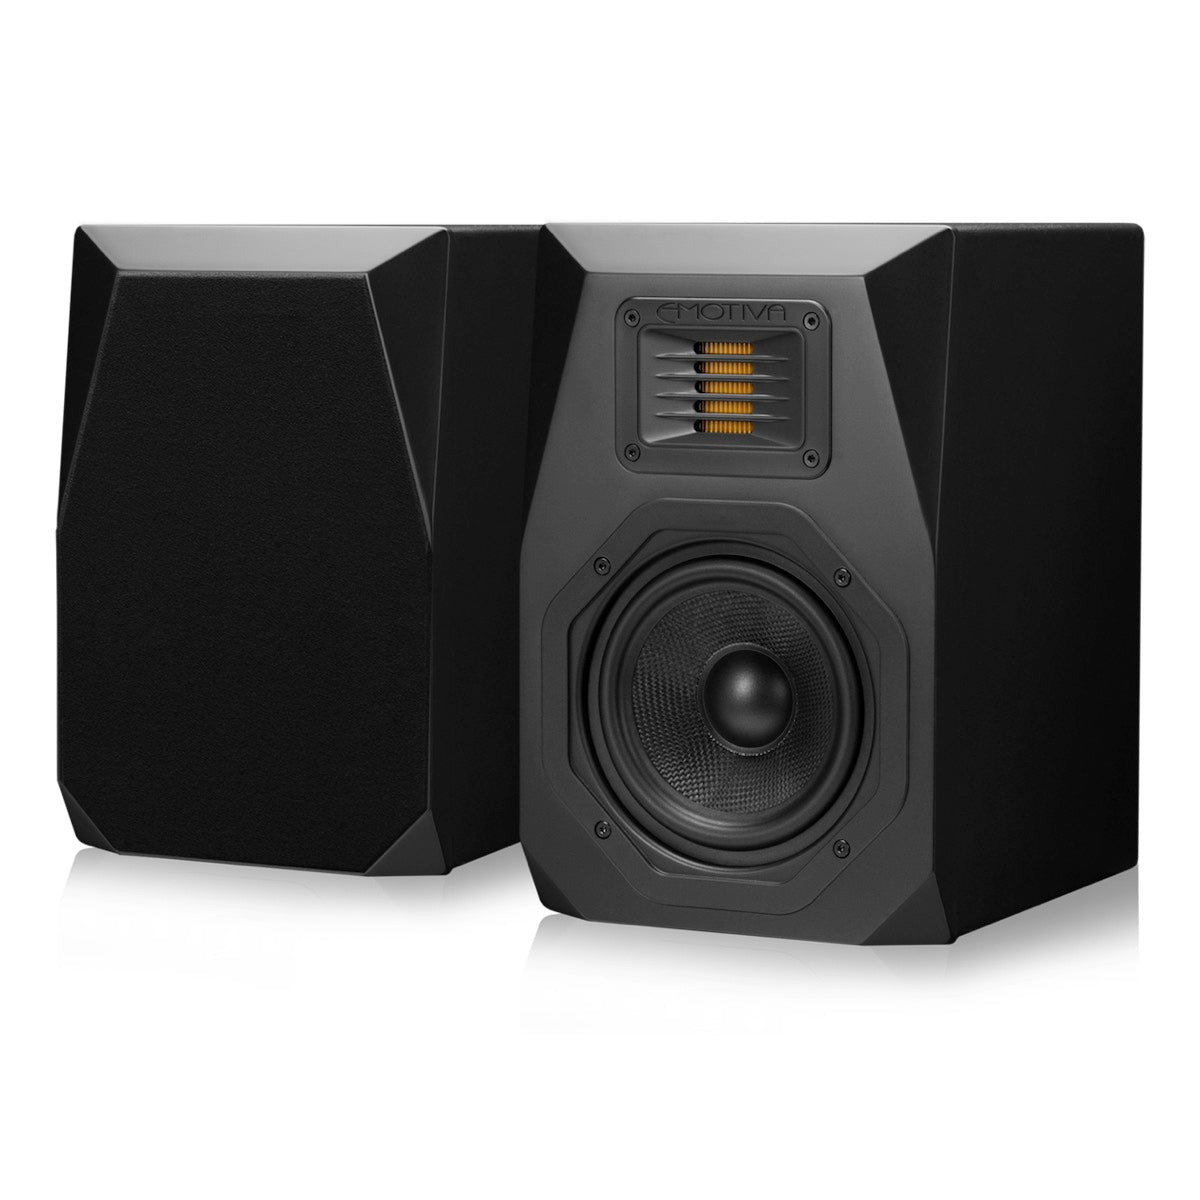 Emotiva Airmotiv B1+ - Bookshelf Speaker - Pair, Emotiva, Bookshelf Speaker - AVStore.in